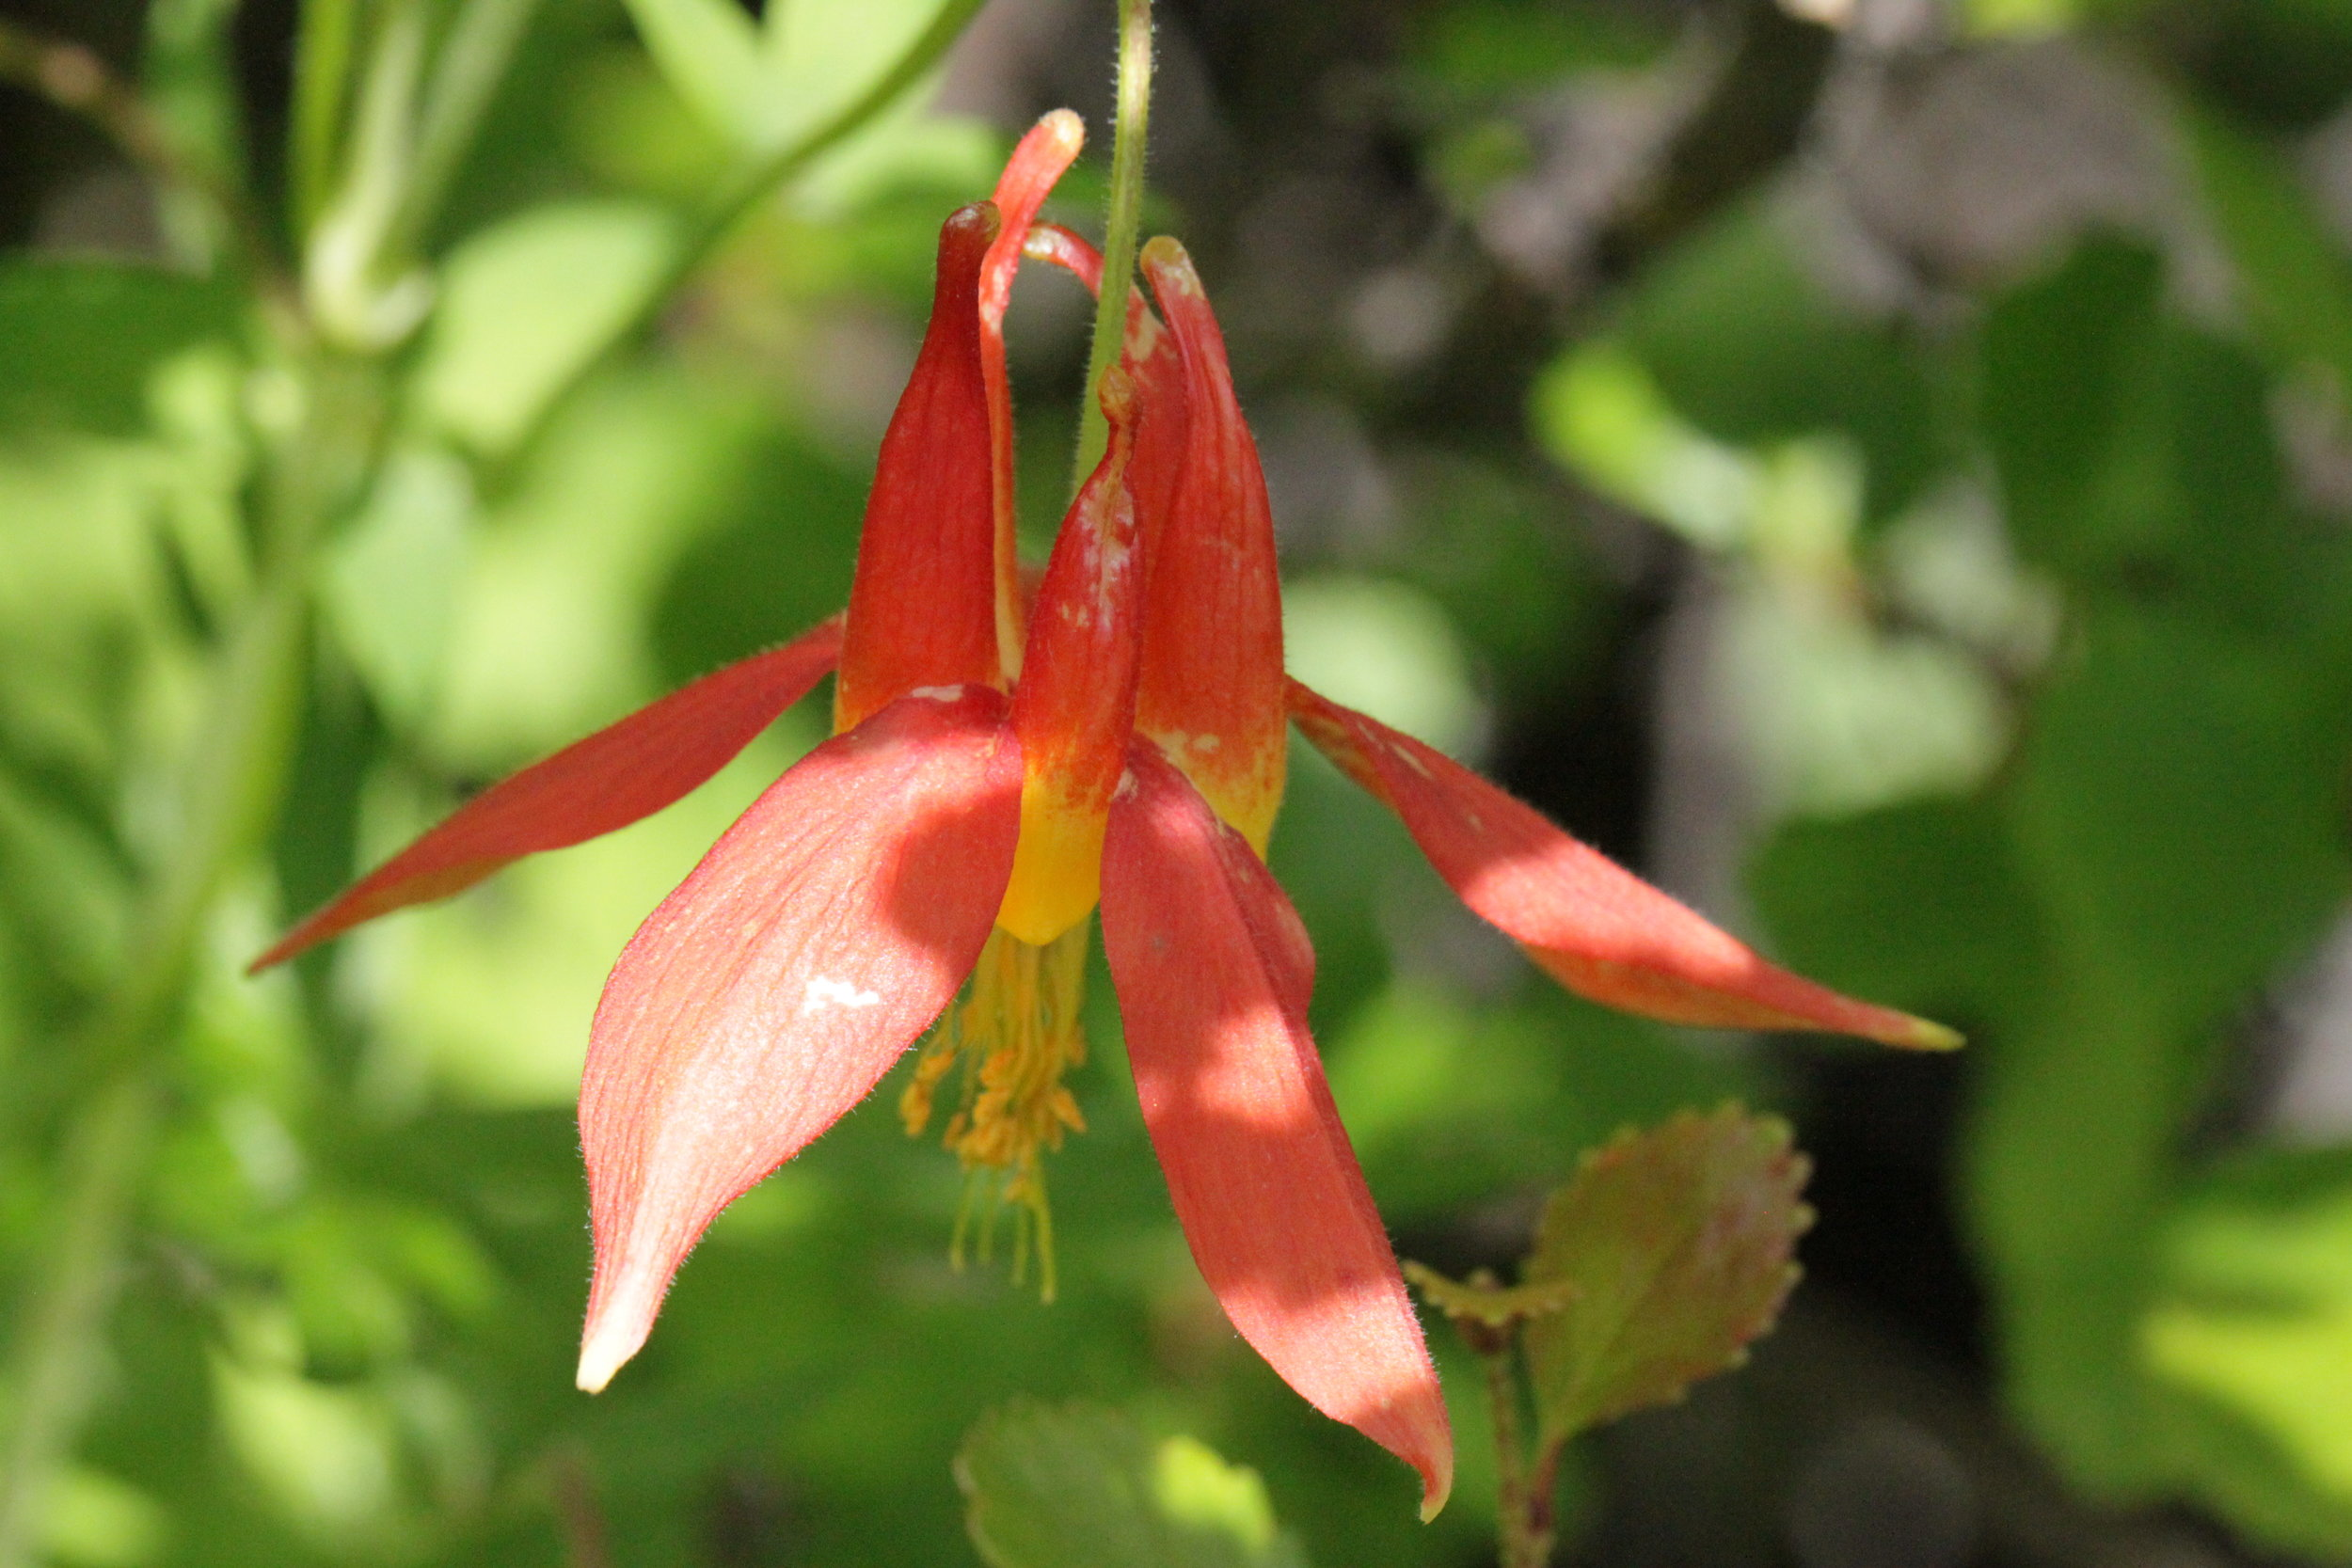 Red columbine was also quite plentiful throughout the meadows ( Aquilegia formosa ).